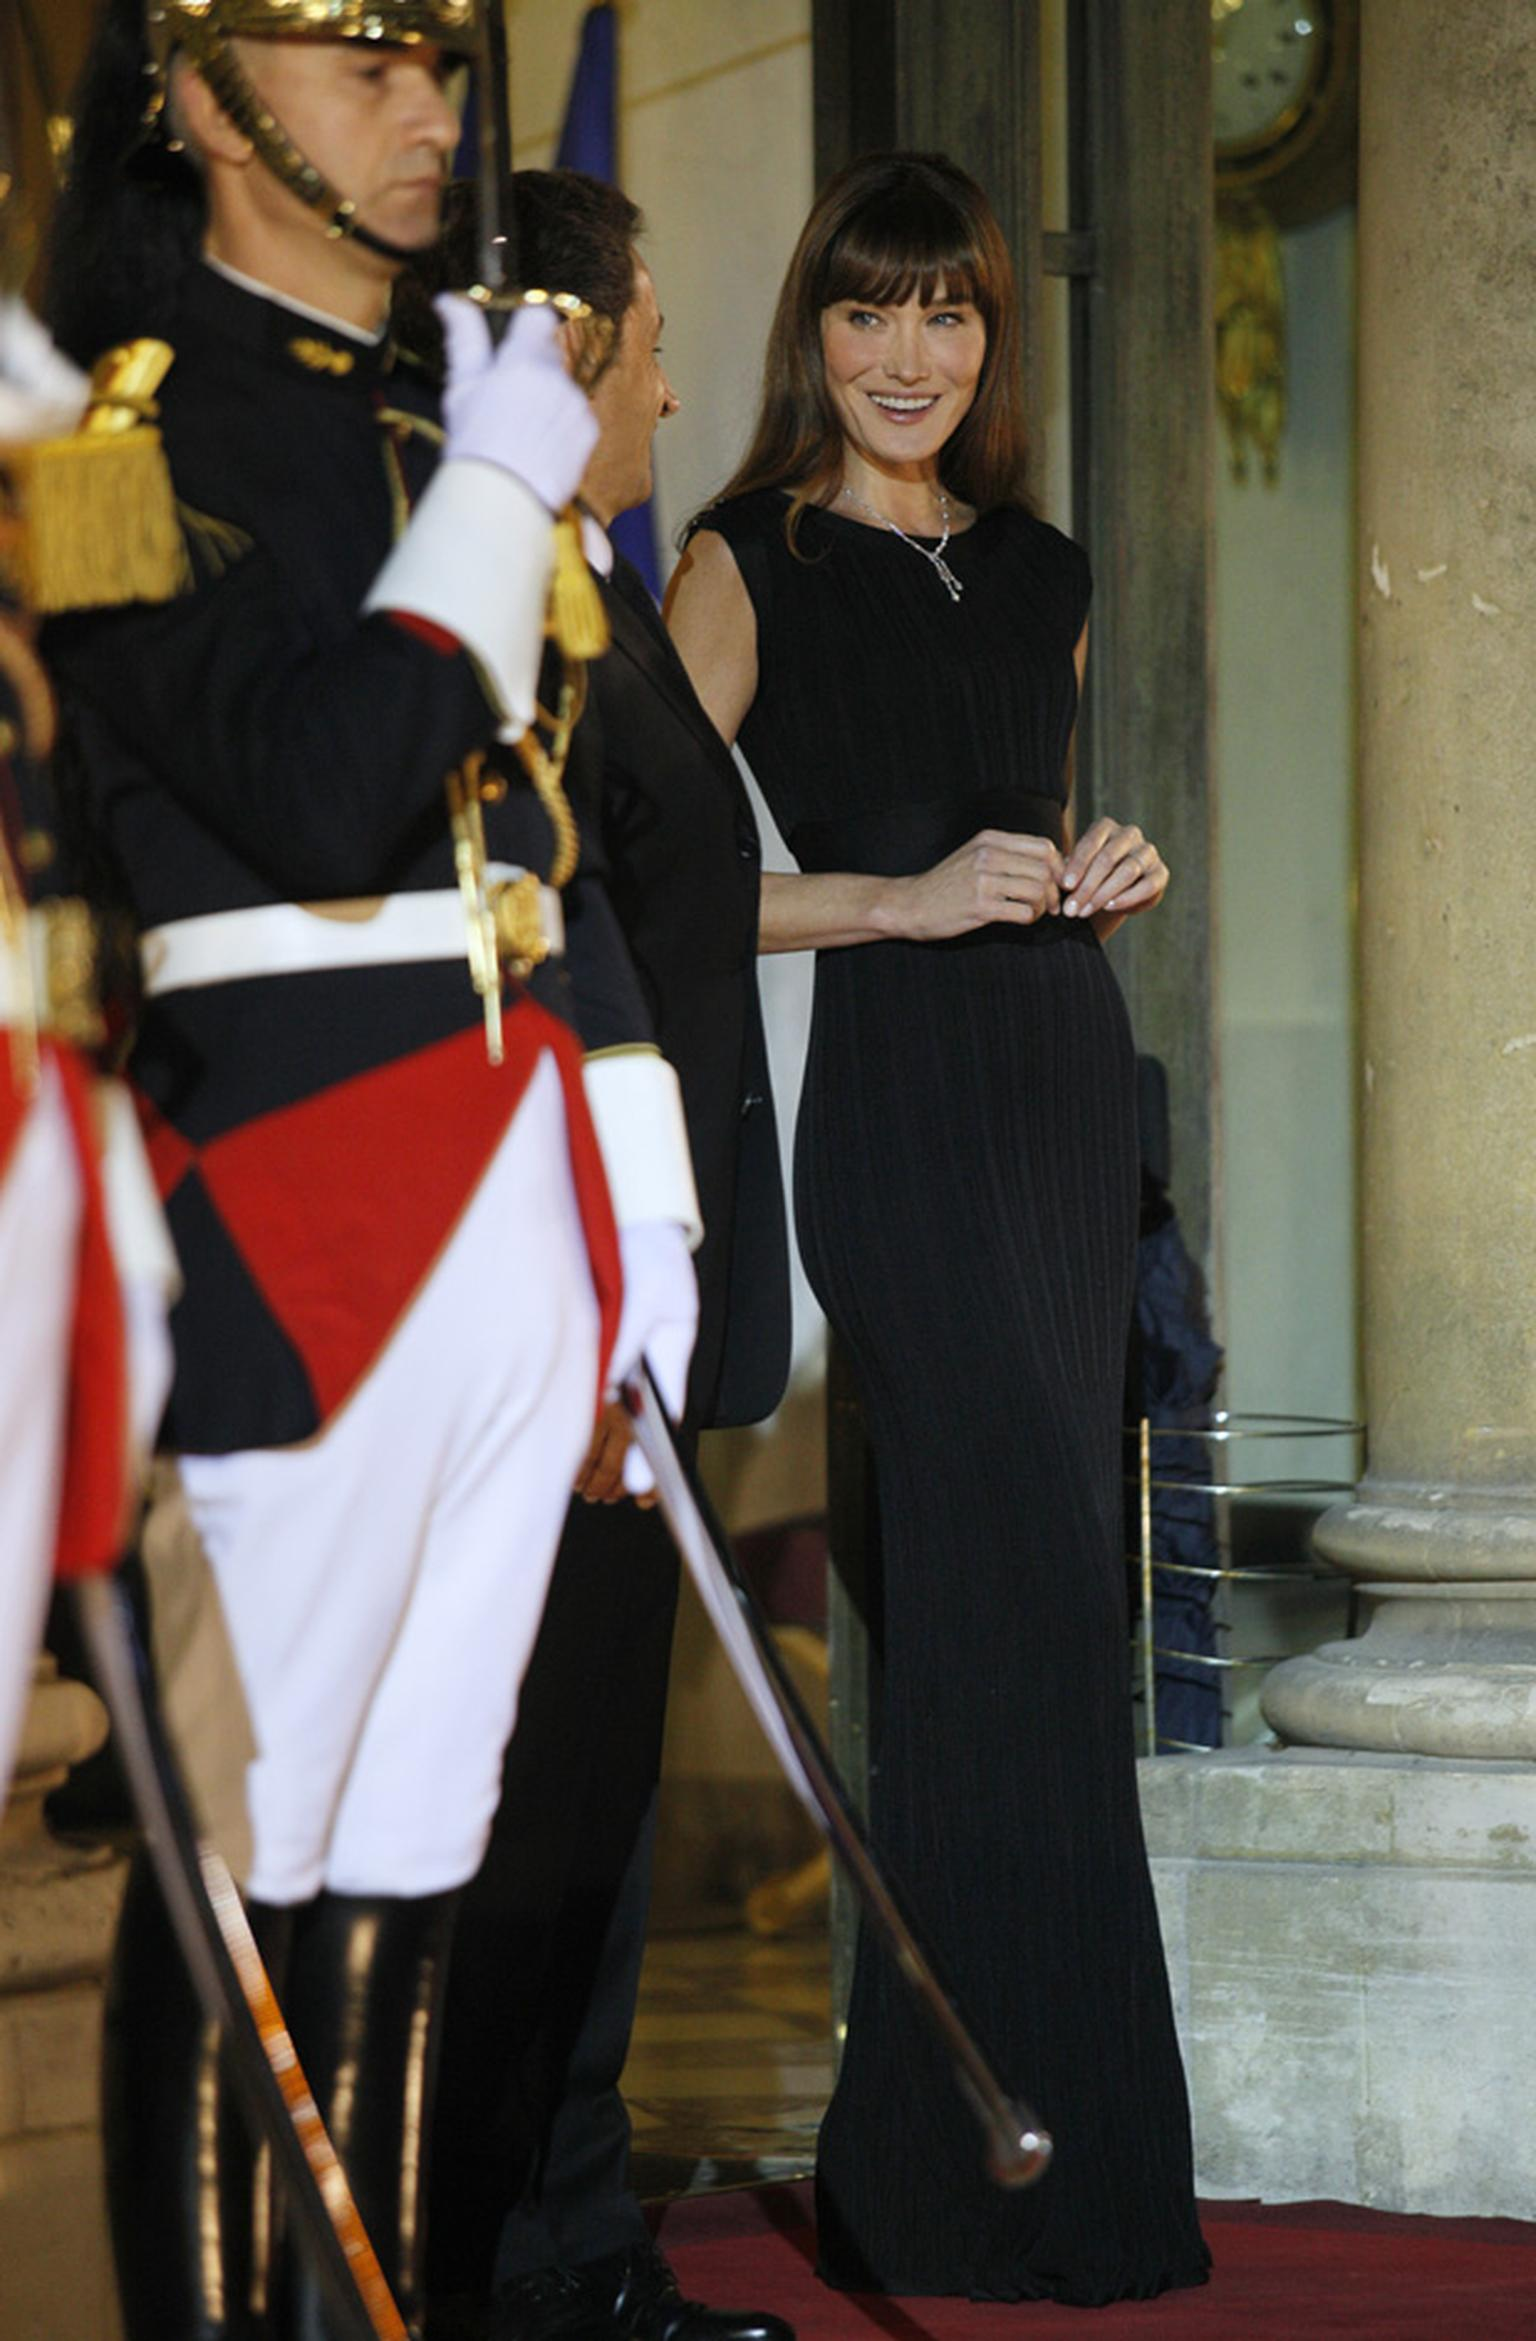 Carla Bruni-Sarkozy at the Elysée Palace on 4th November 2010